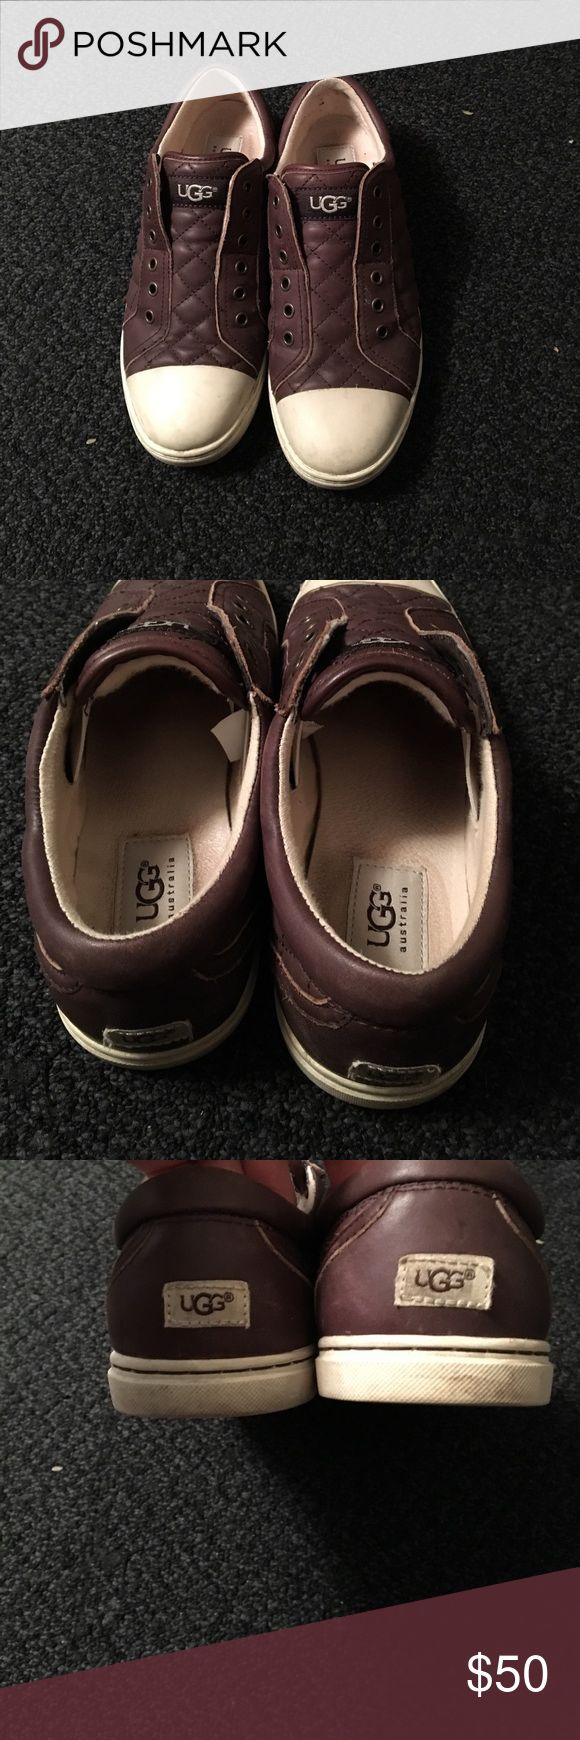 Ugh Sneakers Chocolate brown slip on ugh leather sneakers tongue lined with lamb shearling women's size 7 Shoes Sneakers